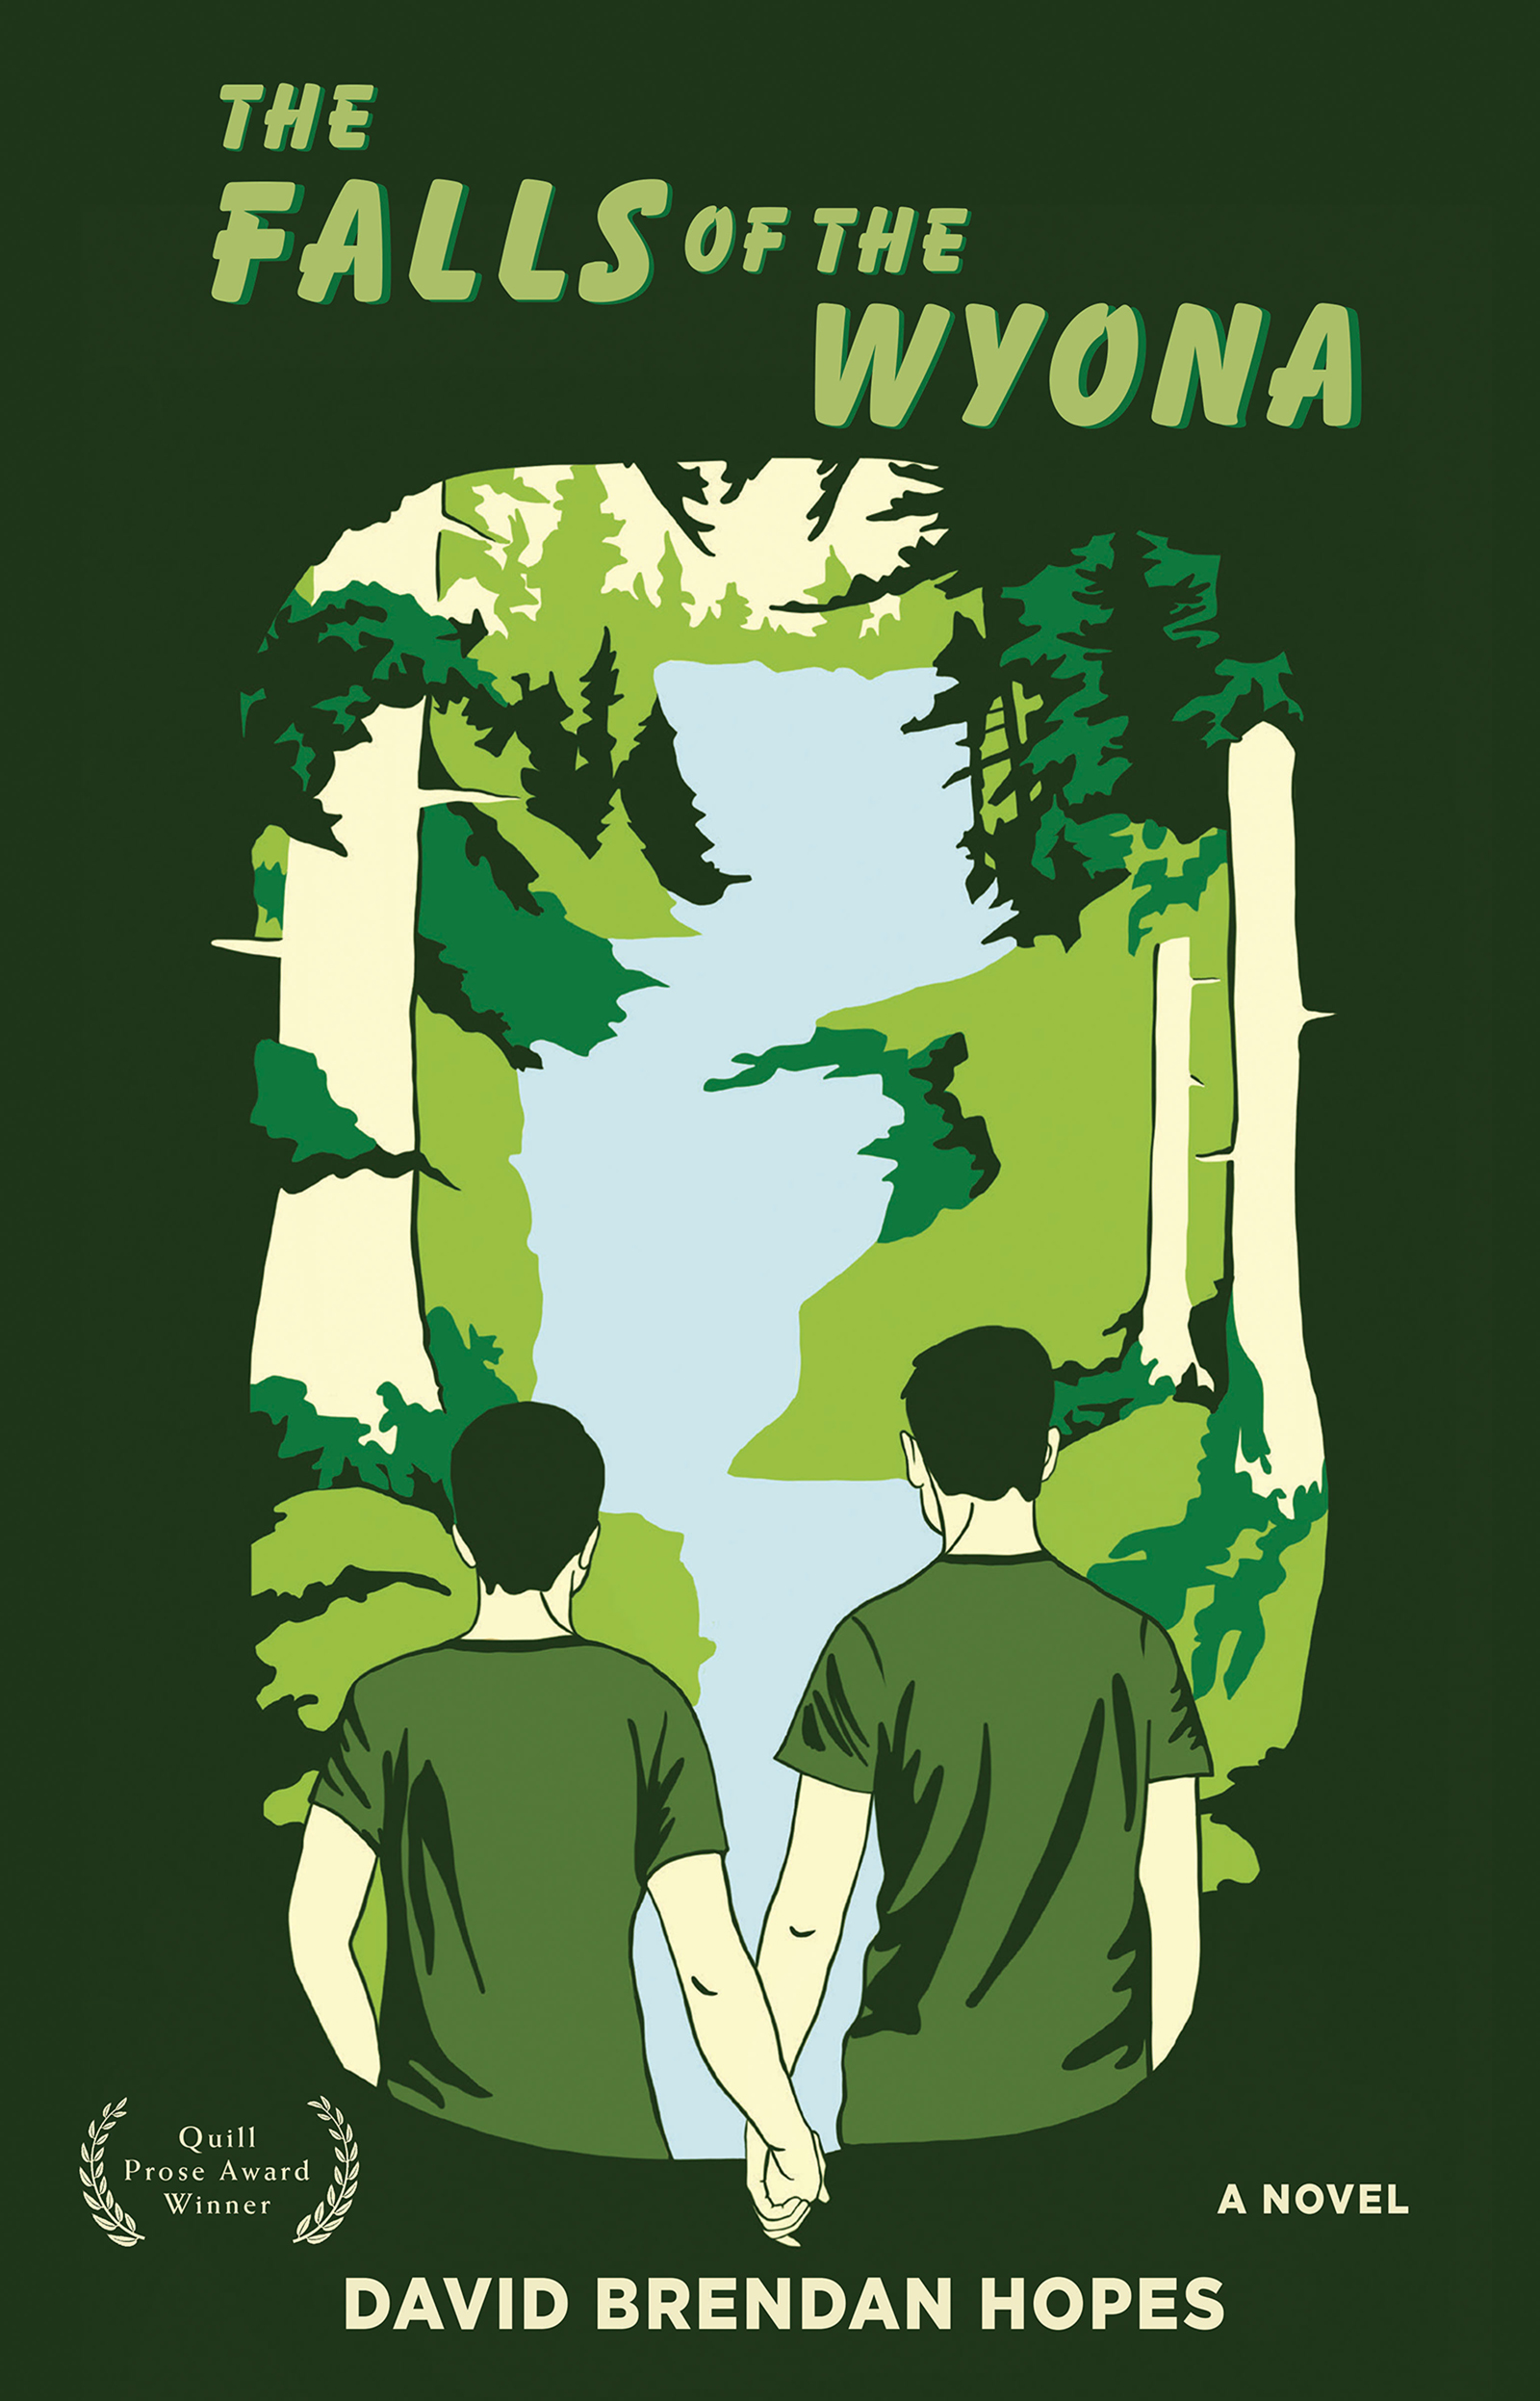 A green background with a graphic design of a lake in the middle of woods and two boys holding hands with light green scrip that reads The Falls of the Wyona a novel by David Brendan Hopes.